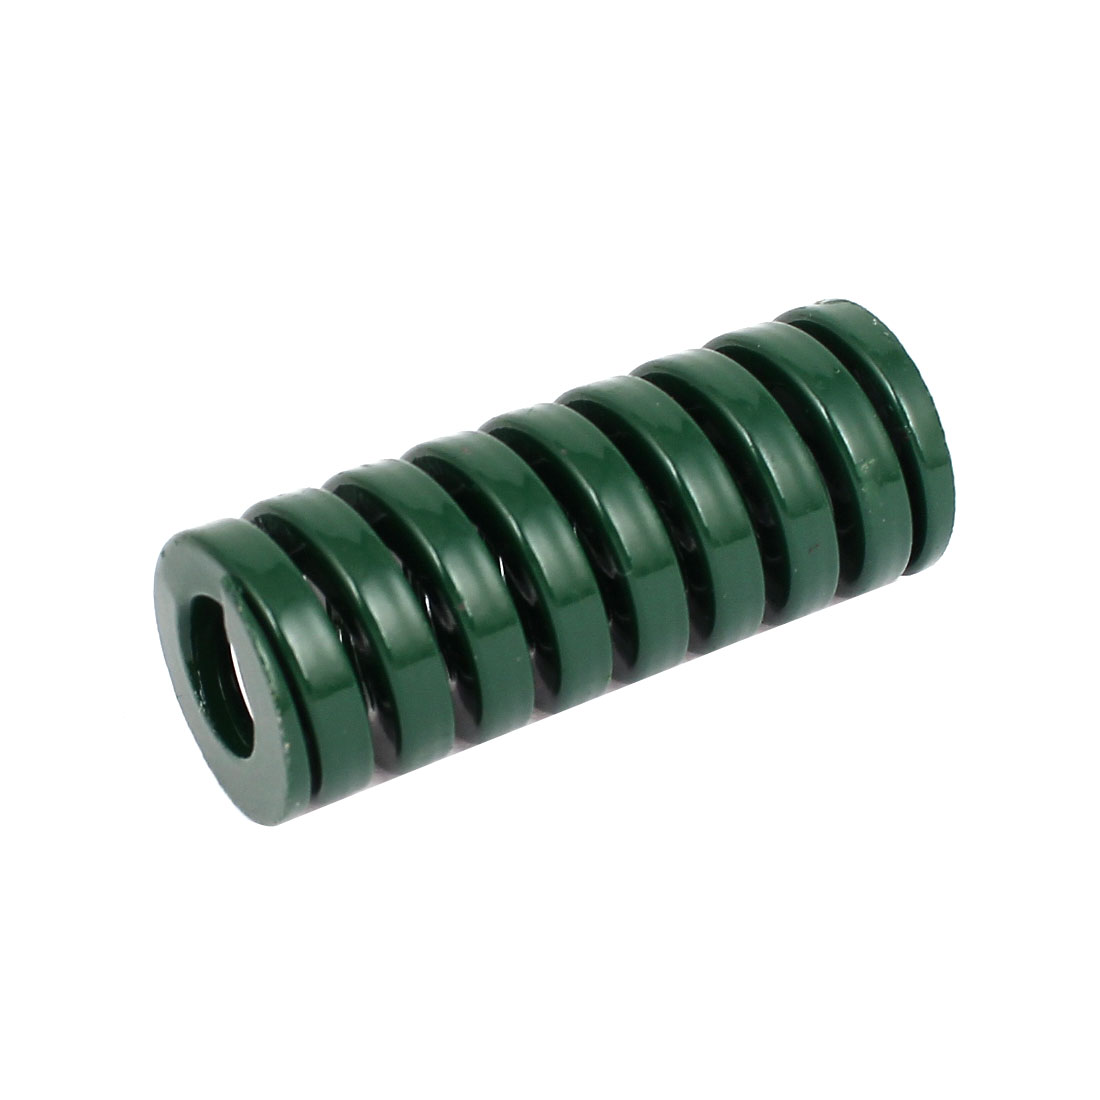 20mm OD 50mm Long Heavy Load Coil Stamping Compression Mold Die Spring Green